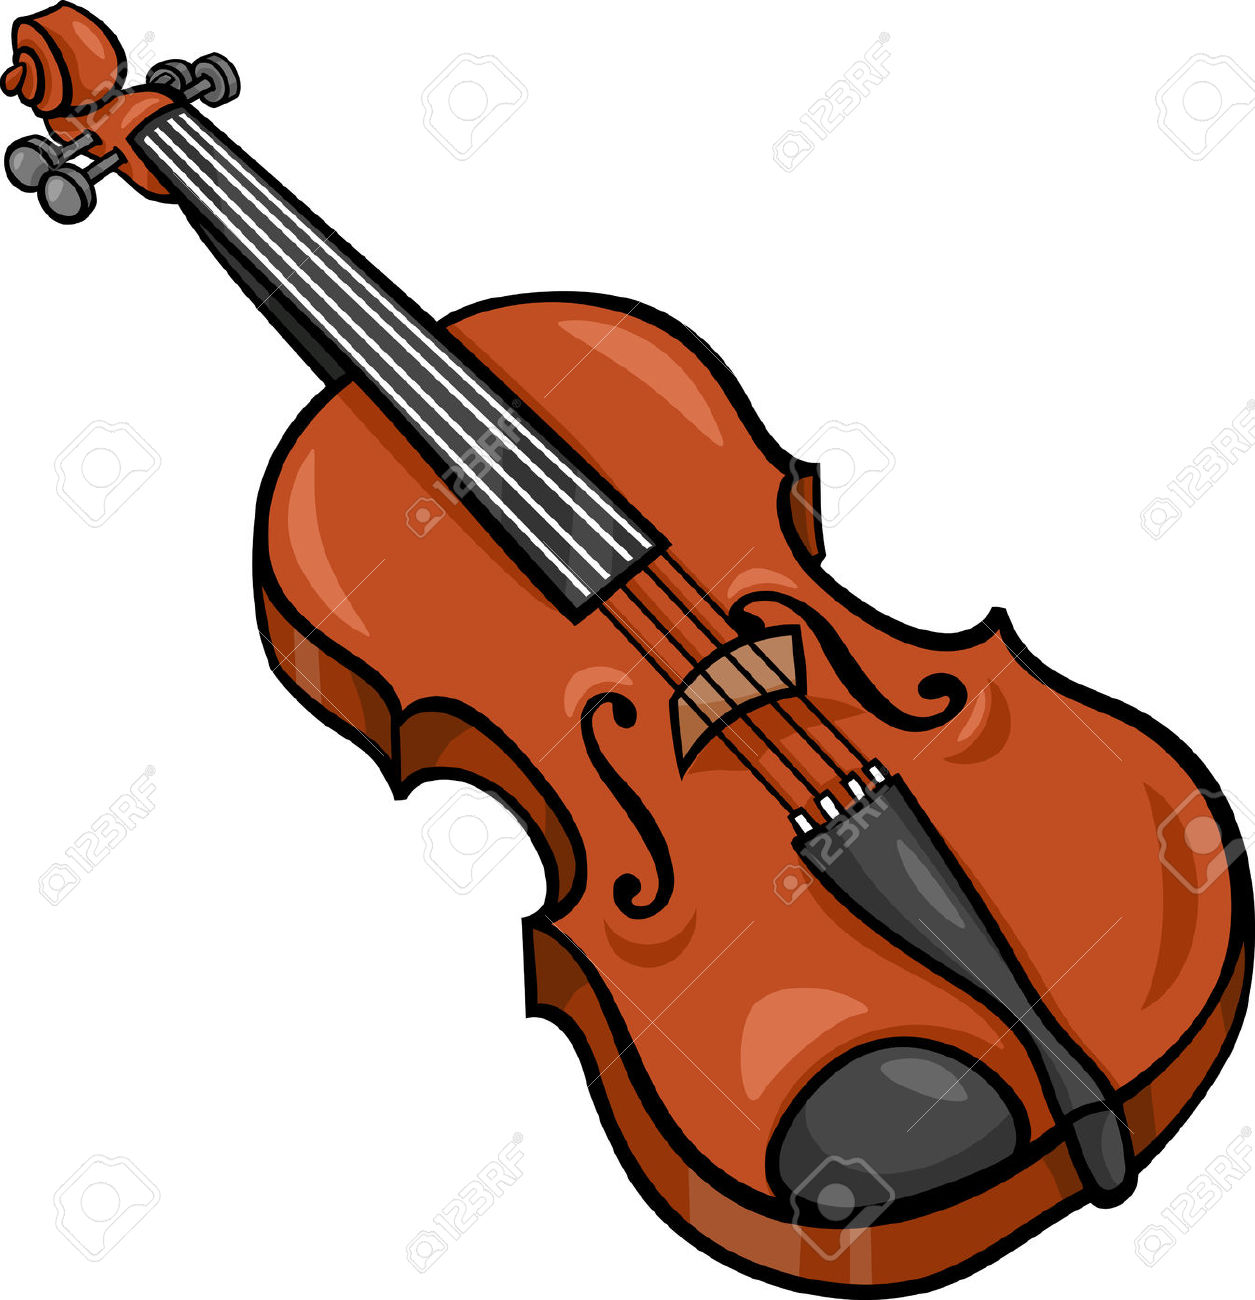 Stringed instruments clipart #16